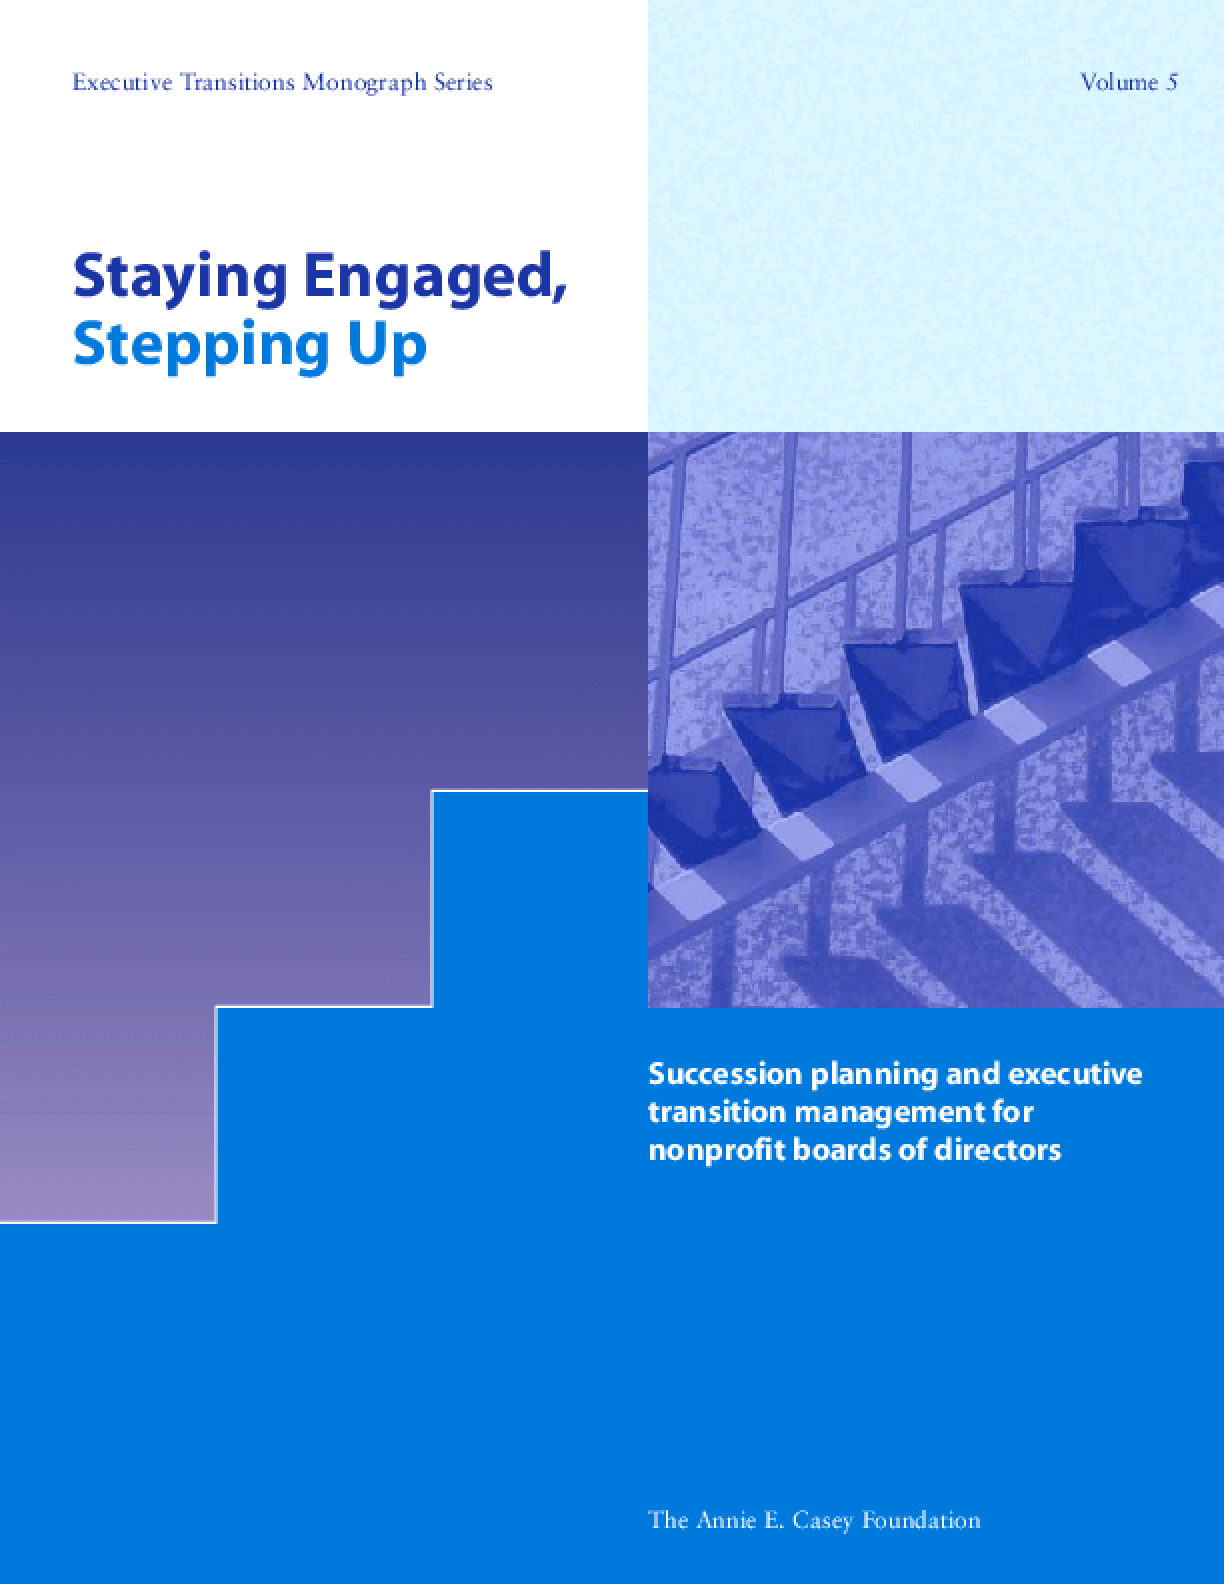 Staying Engaged, Stepping Up: Succession Planning and Executive Transition Management for Nonprofit Boards of Directors